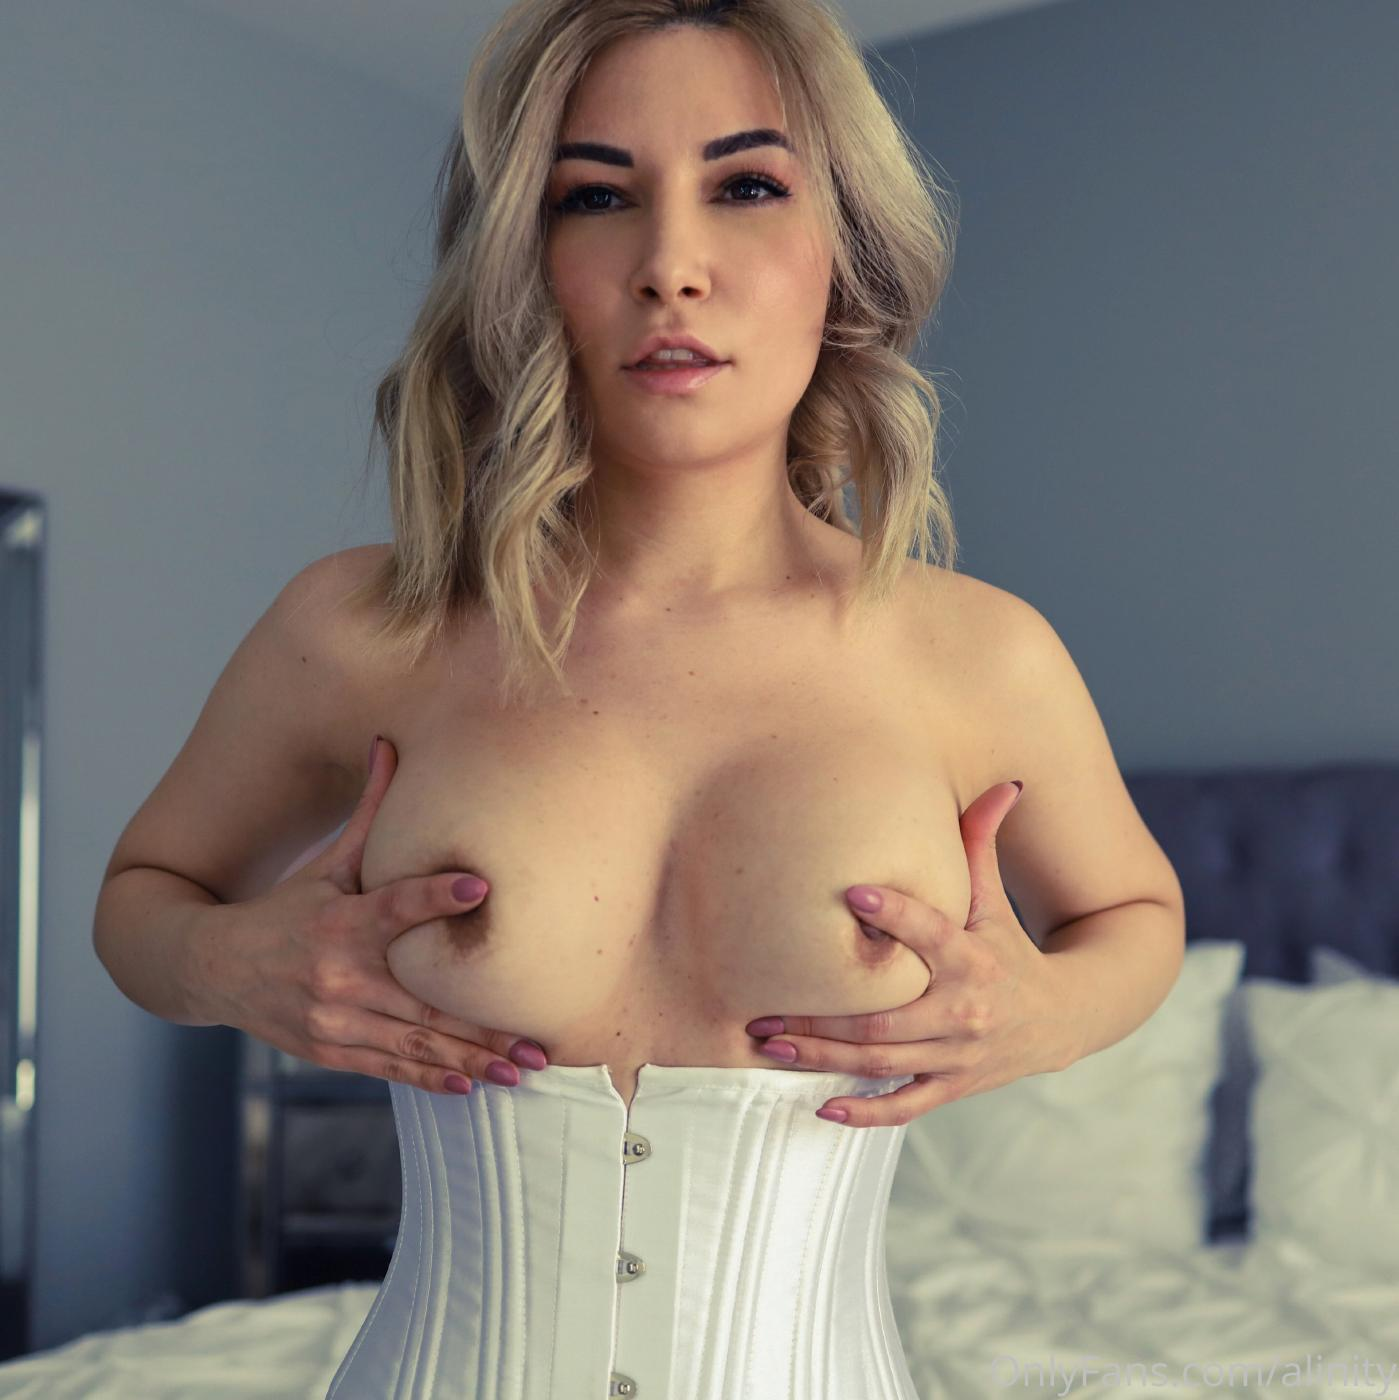 Alinity Nude Corset Onlyfans Set Leaked 0002